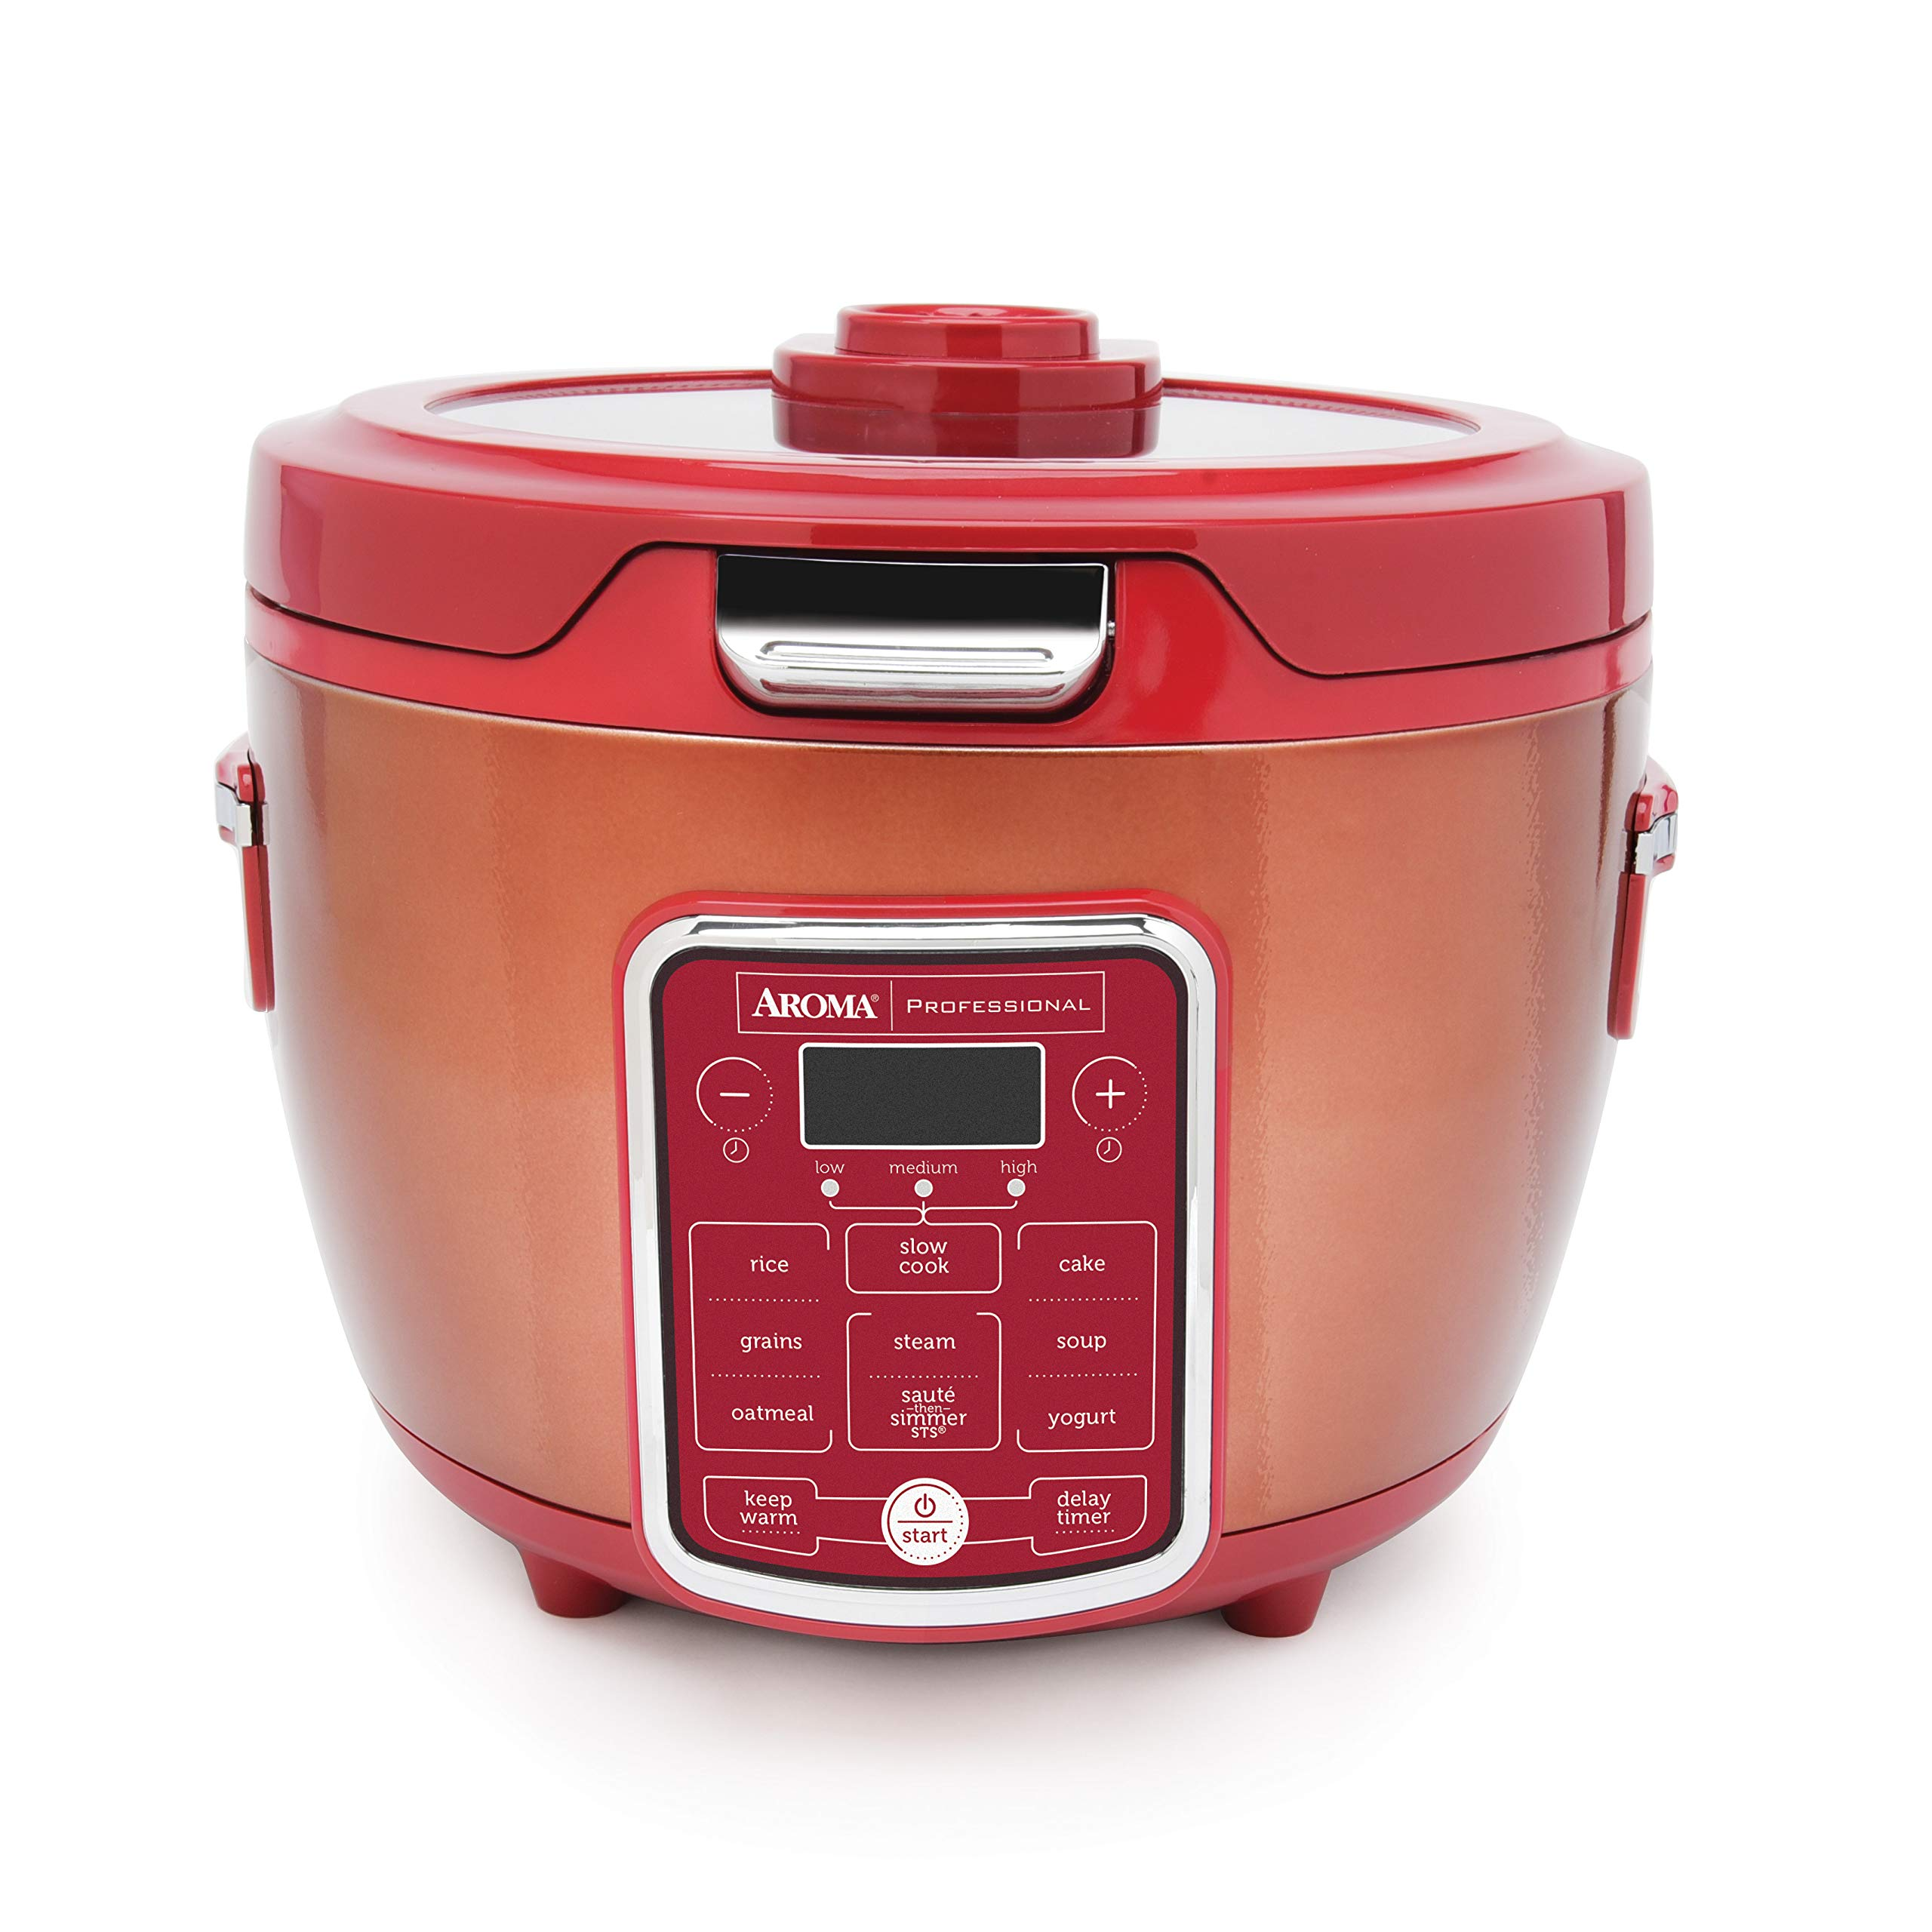 Aroma Professional ARC-1230R RICE COOKER/MULTICOOKER, 20 Cup Cooked, Red by Aroma Professional